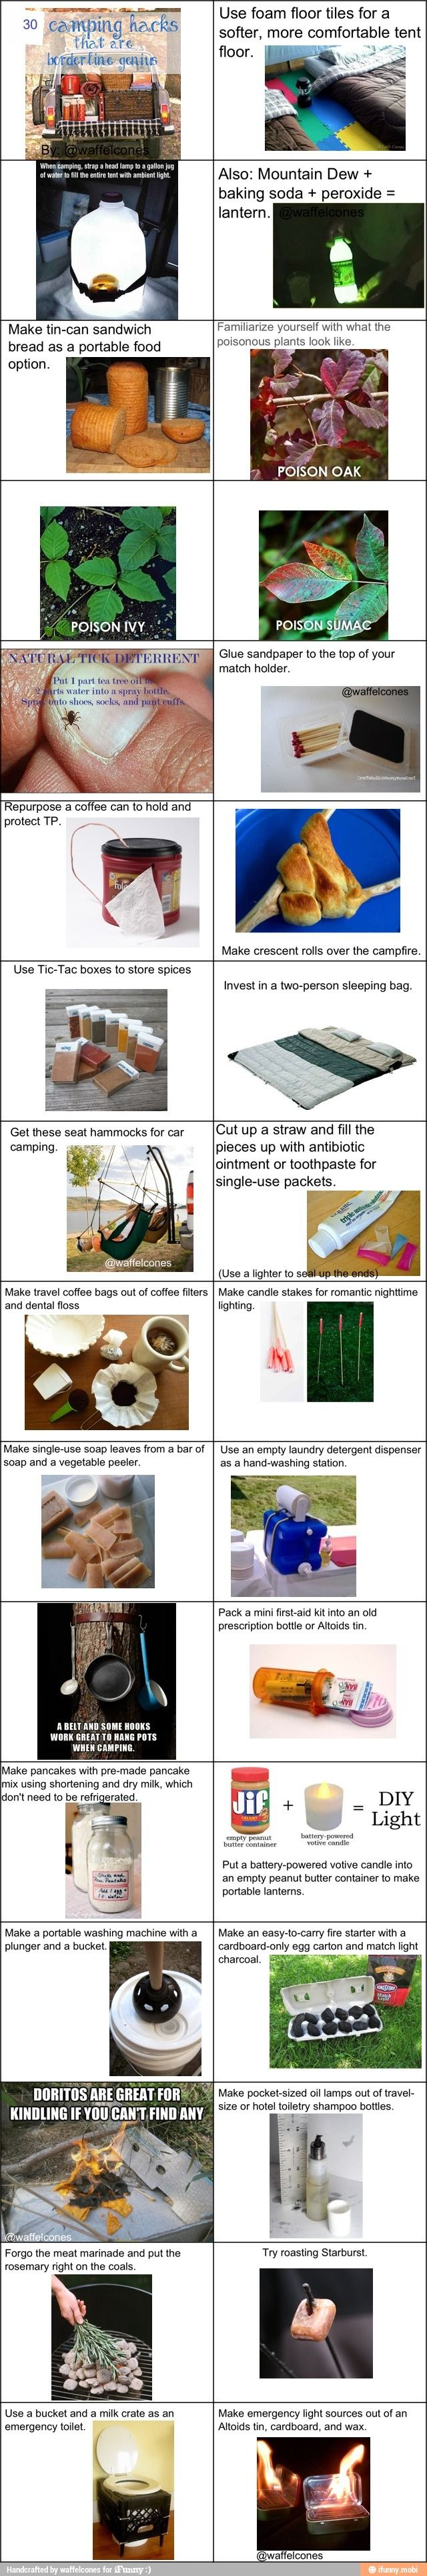 Great camping hacks